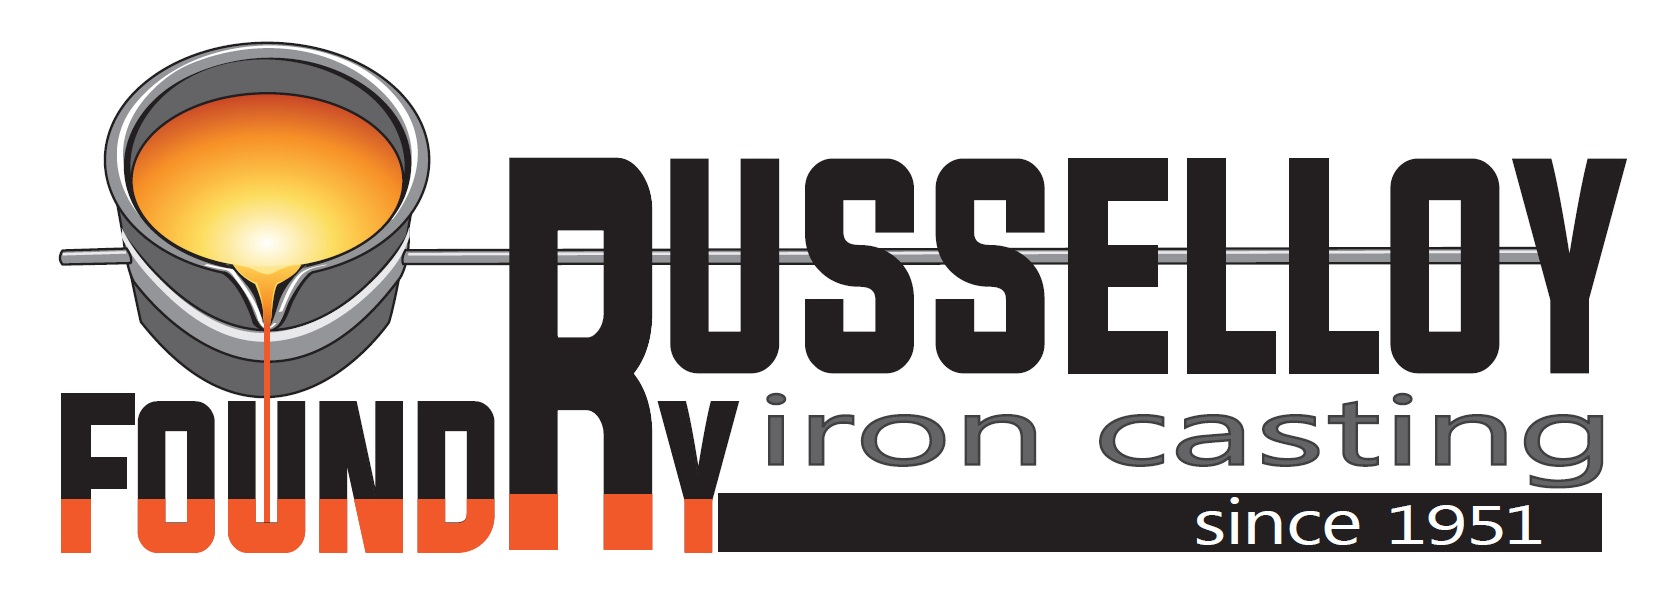 Russelloy Foundry logo